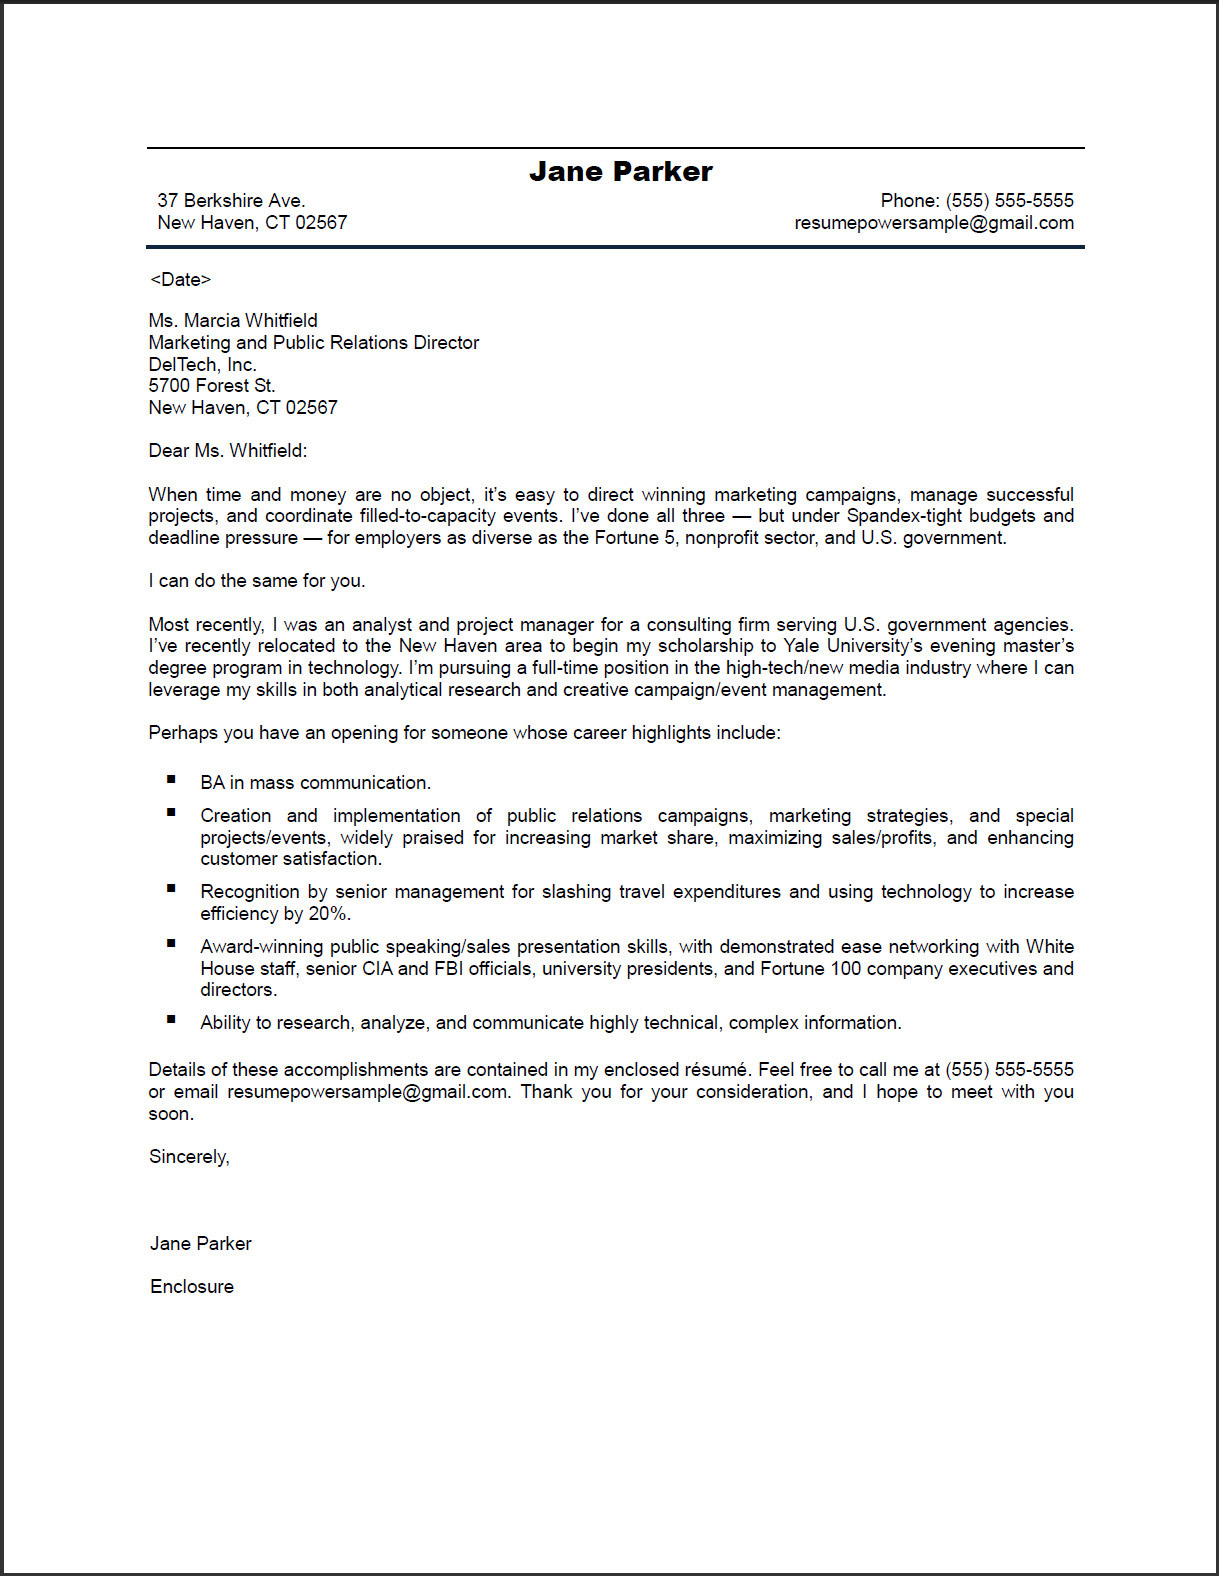 http://resumepower.com/docs/samples/14_CoverLetterSample_PRMarketing_ColdLetter.jpg